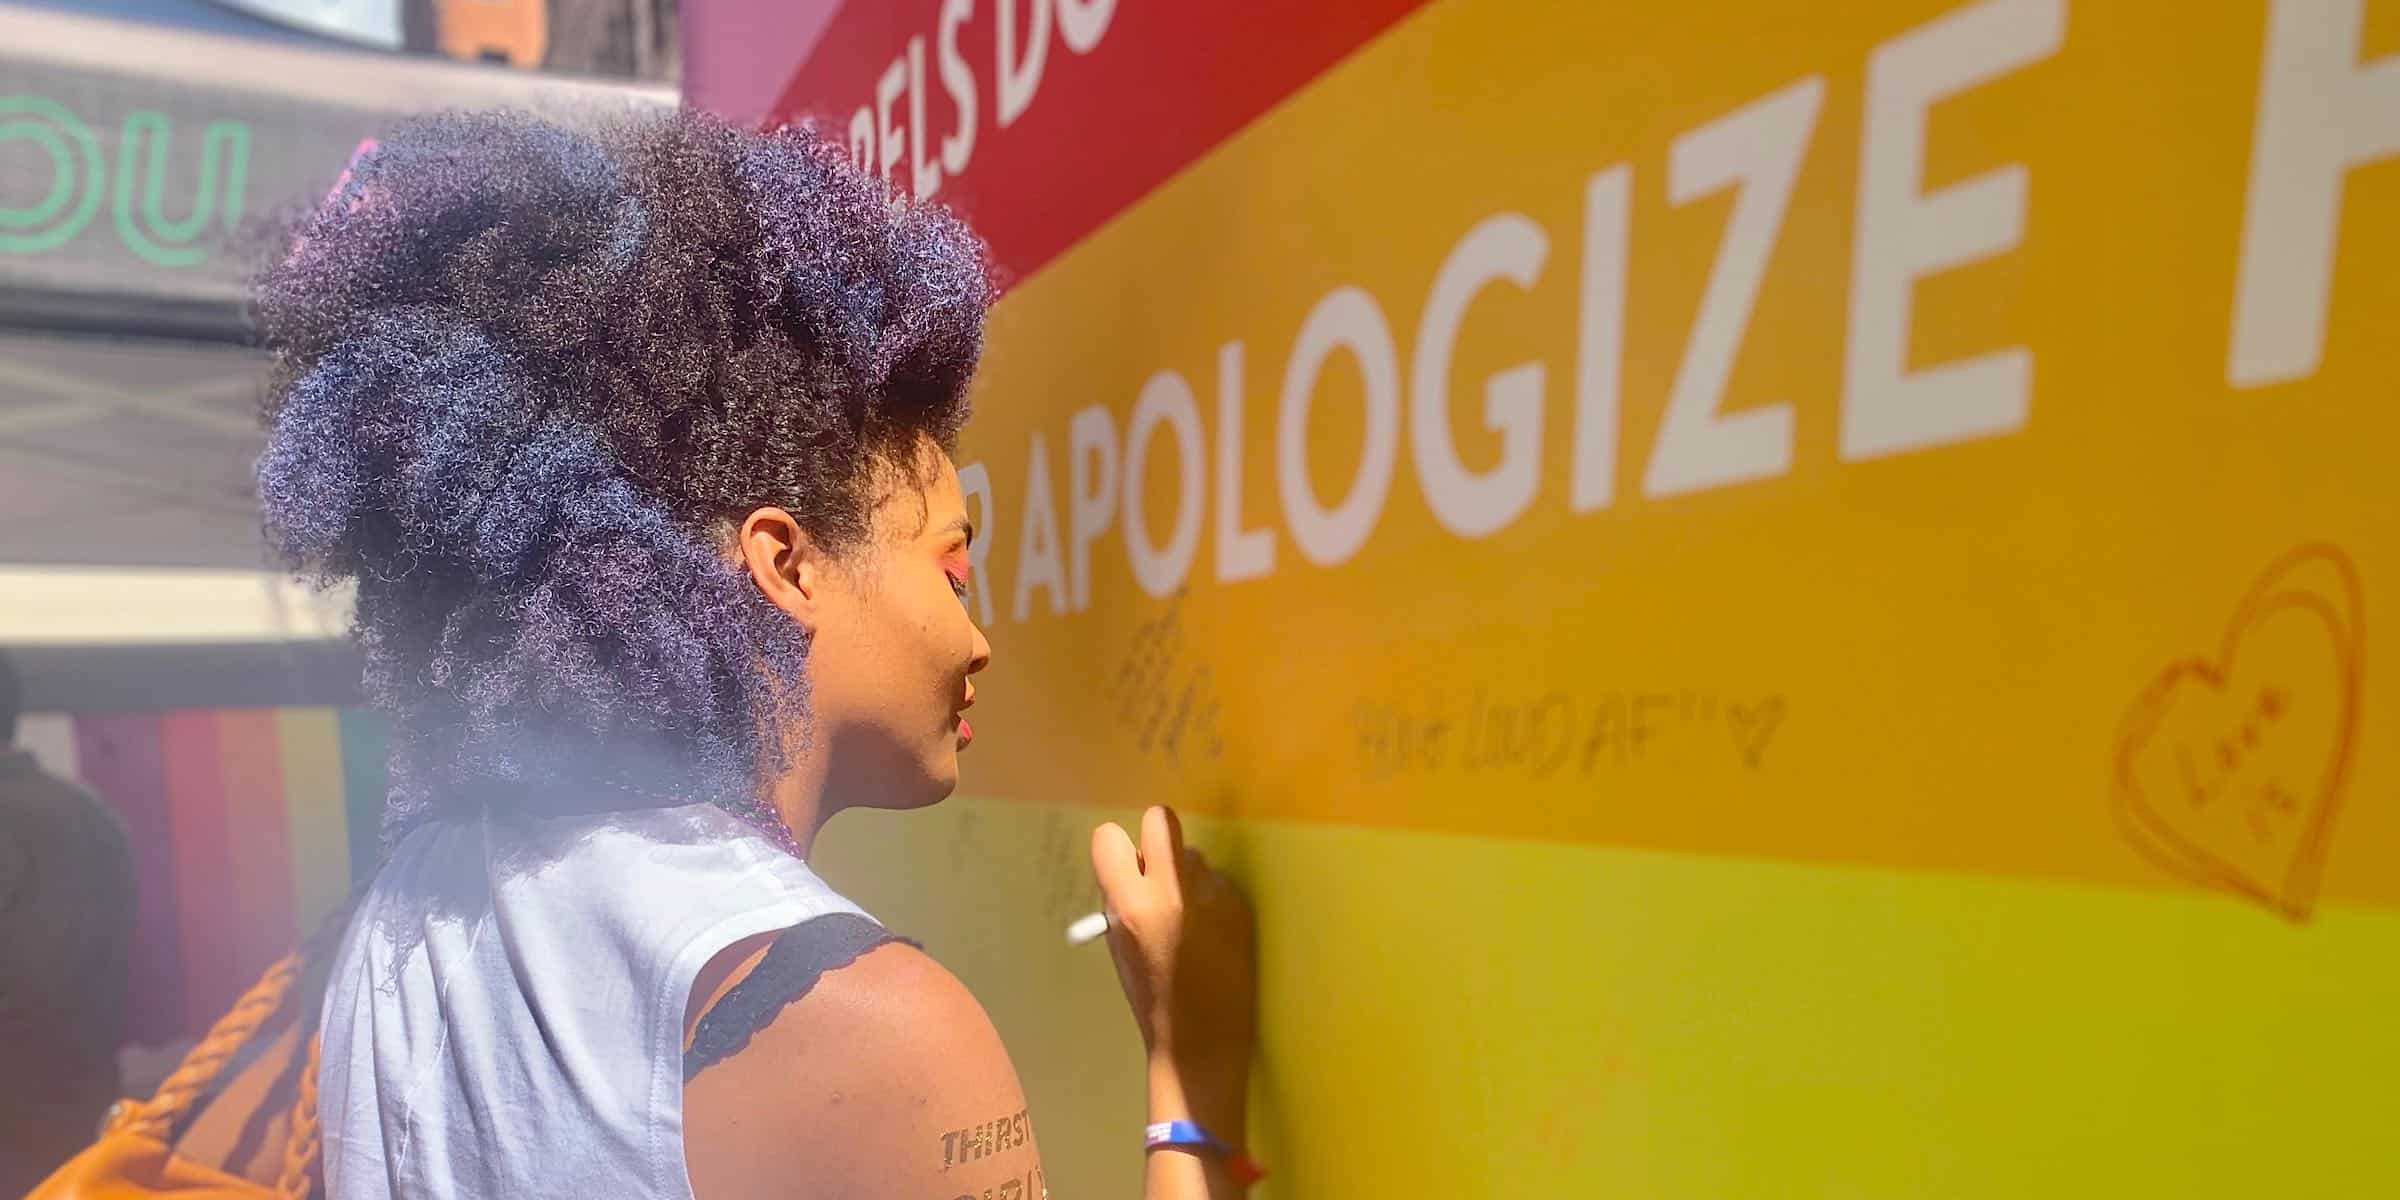 NYC Pride Experiential Marketing Activation - New York City